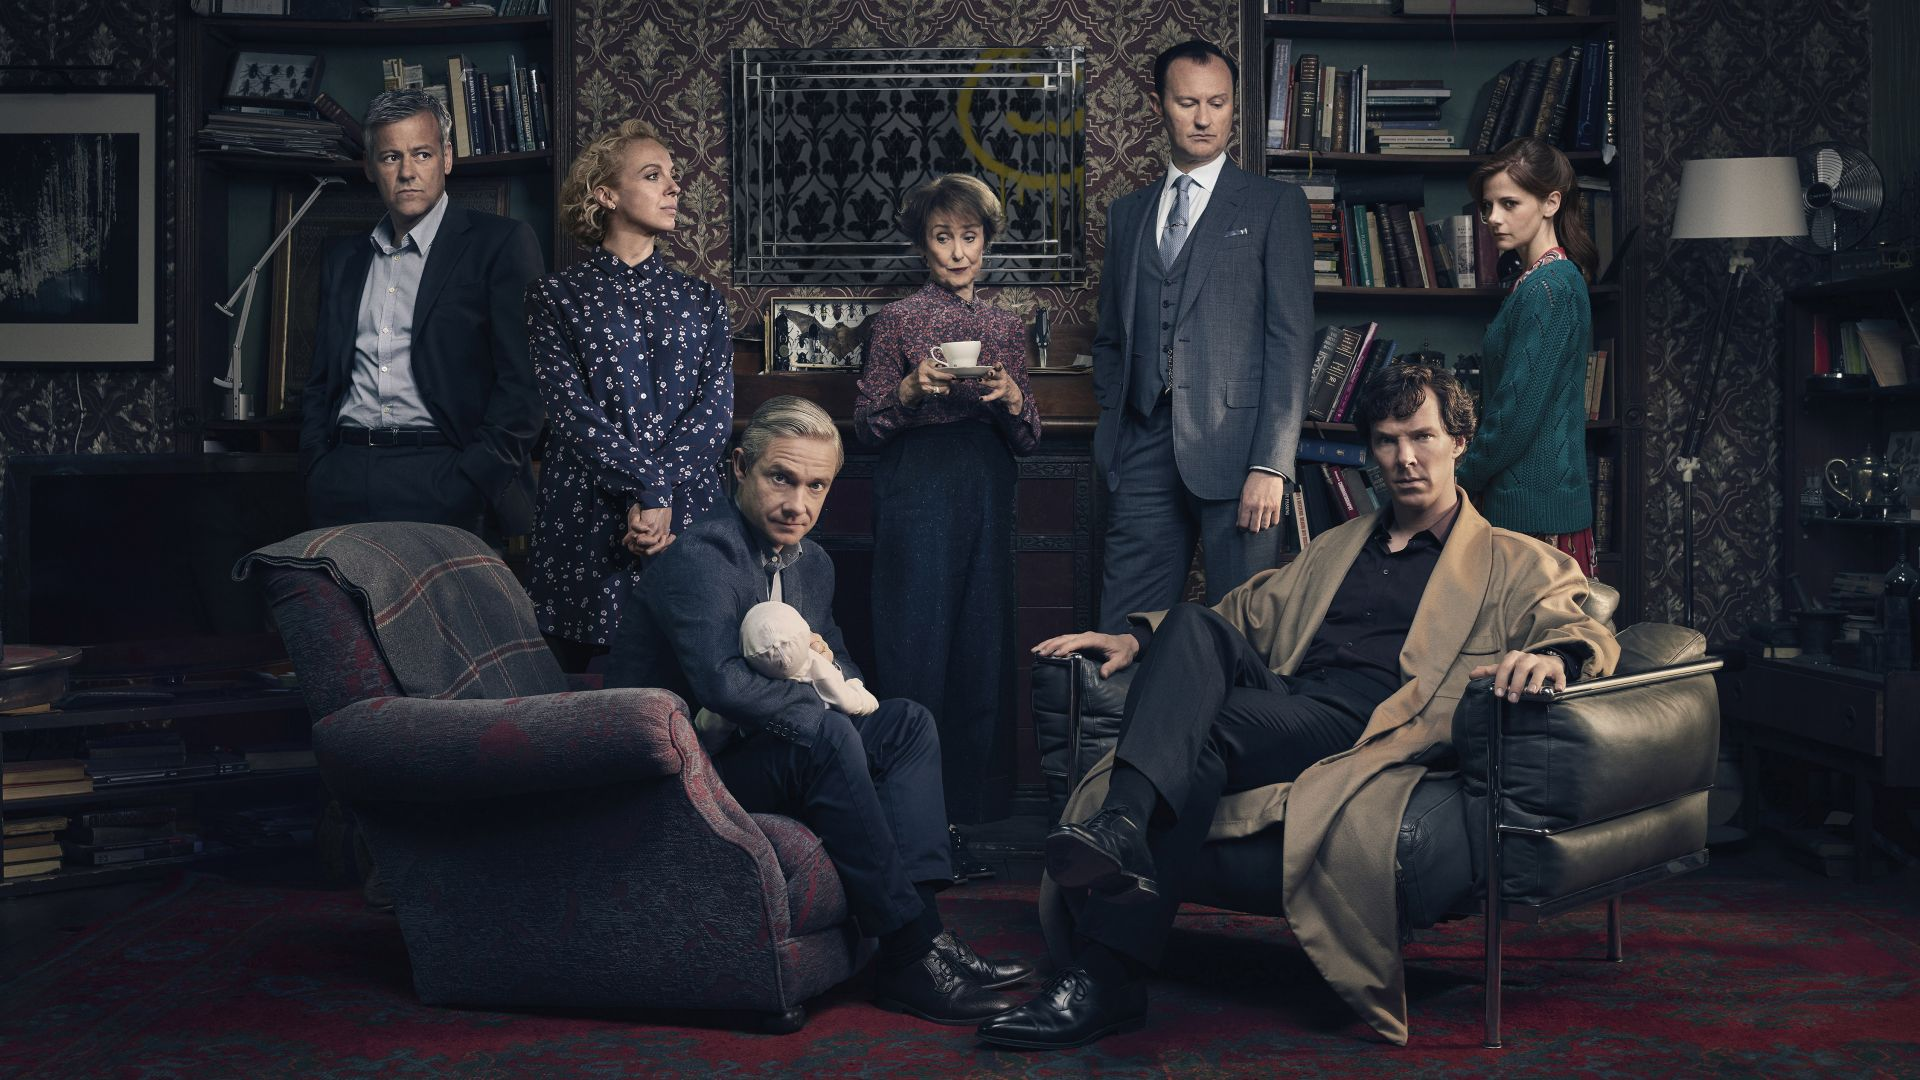 Шерлок 4, Sherlock Season 4, Benedict Cumberbatch, Martin Freeman, Louise Brealey, TV Series, 4k (horizontal)